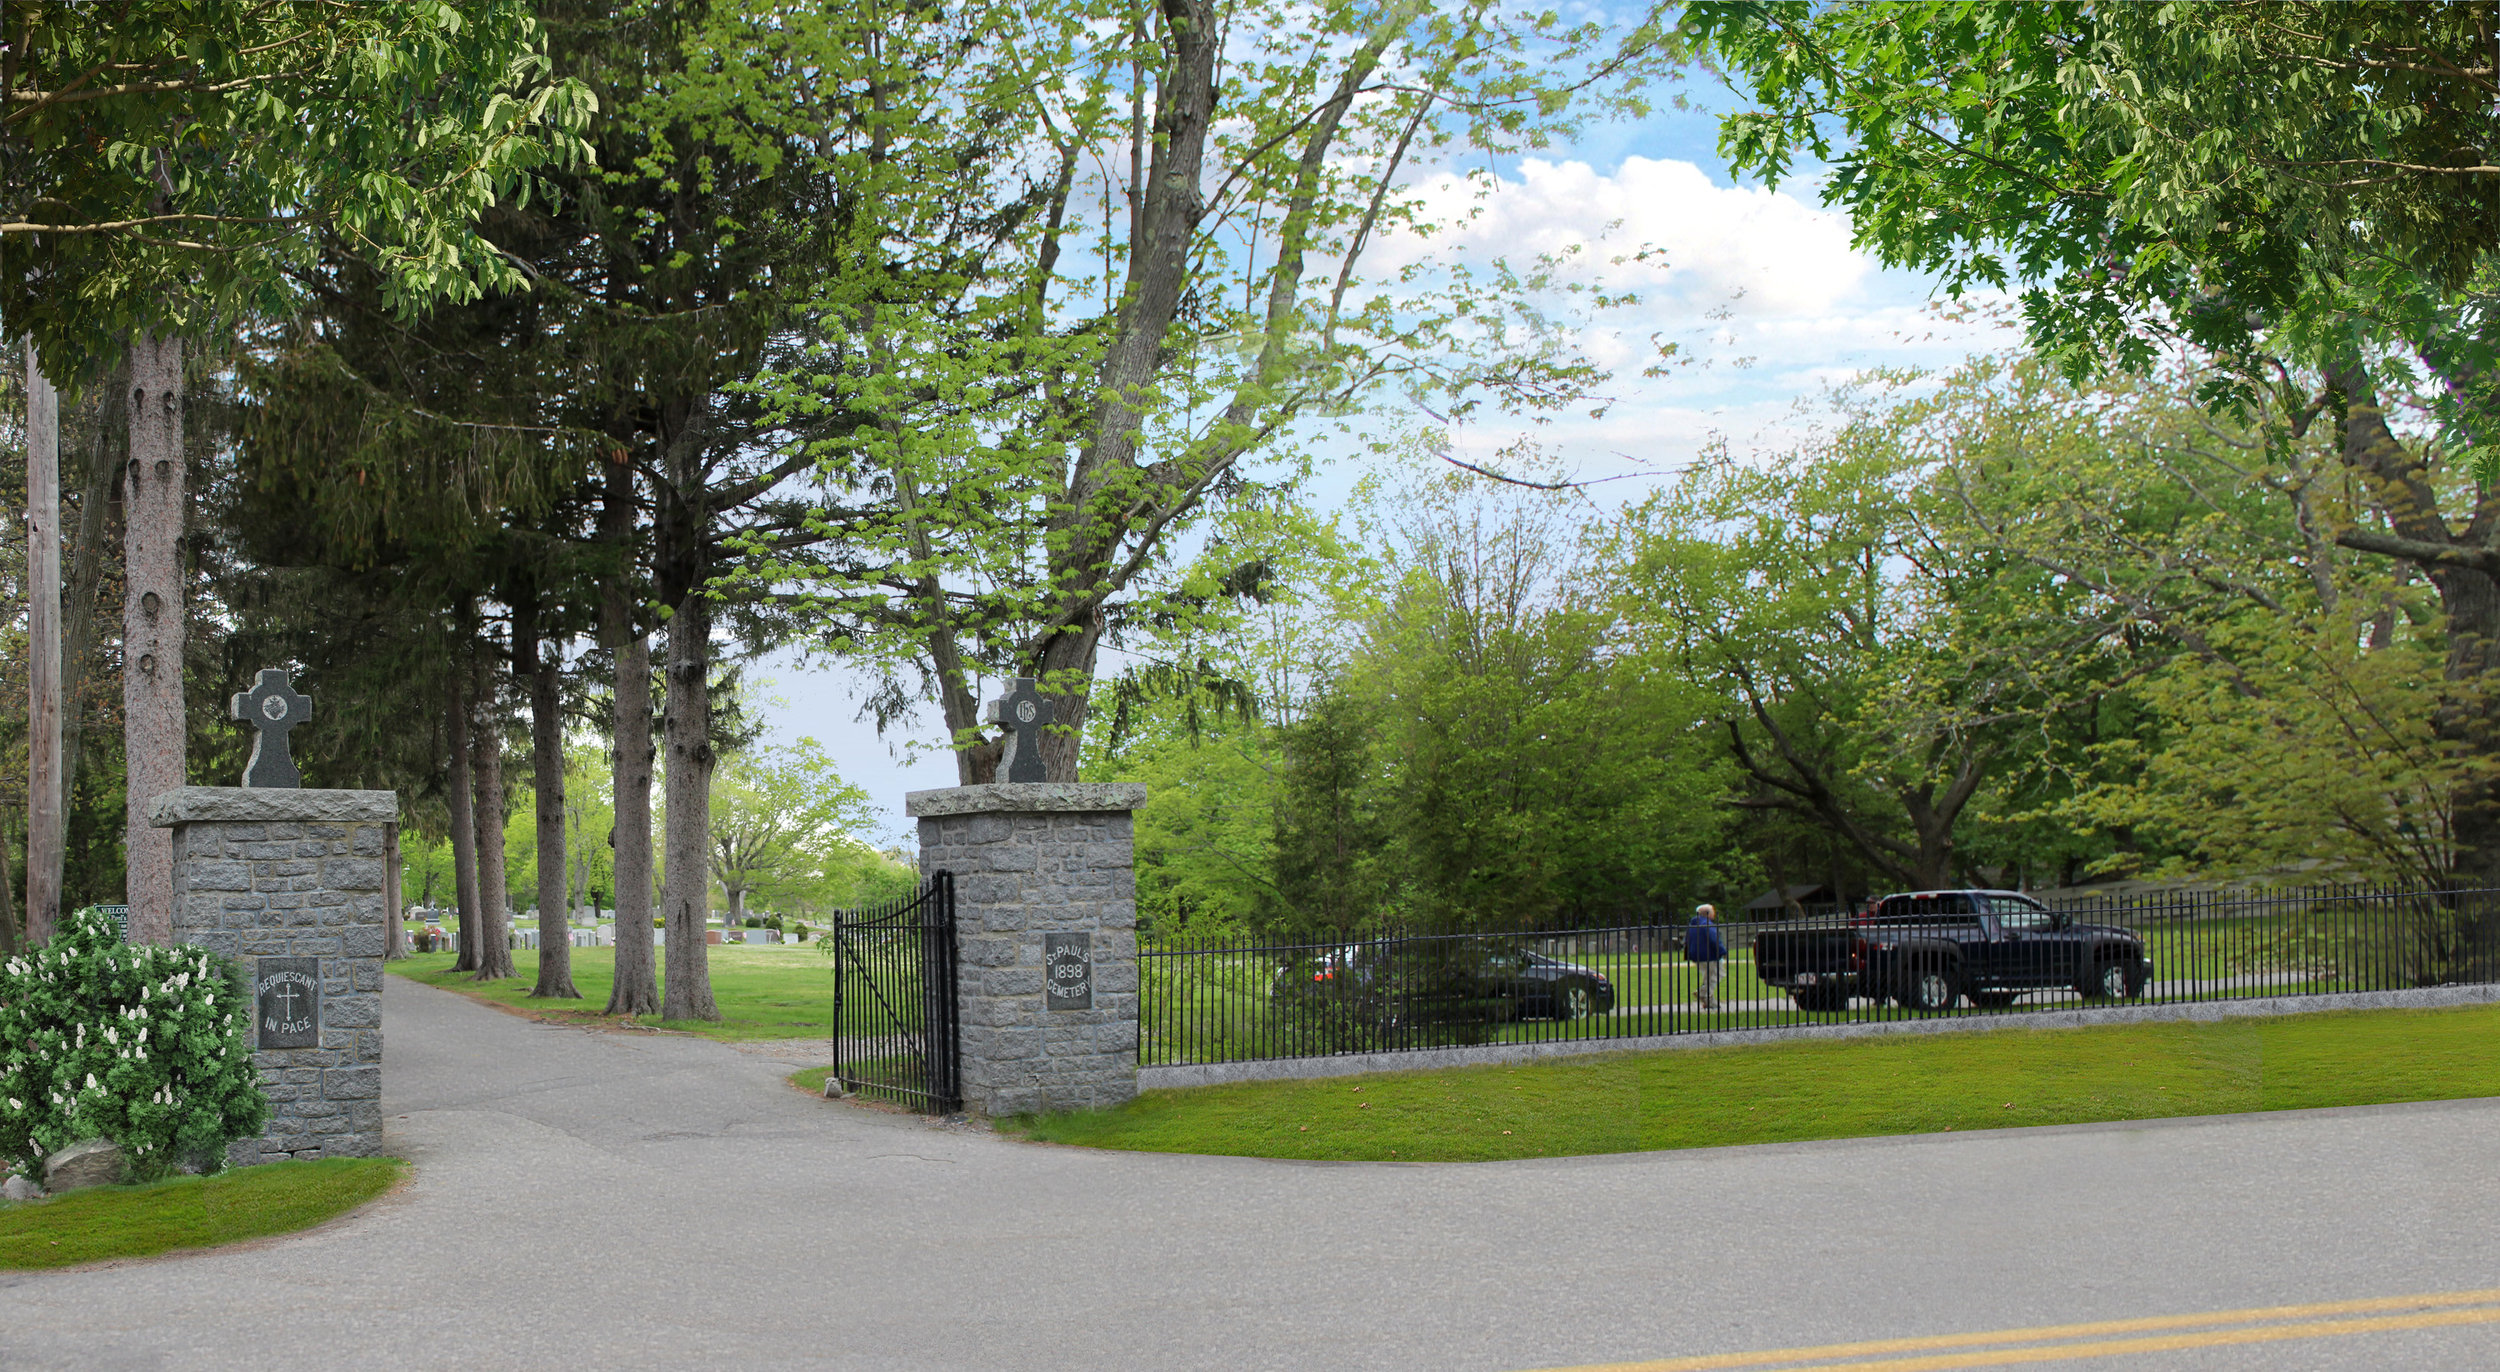 Entry gates at St. Paul Parish Cemetery in Hingham, MA (Rendering by Halvorson Design)